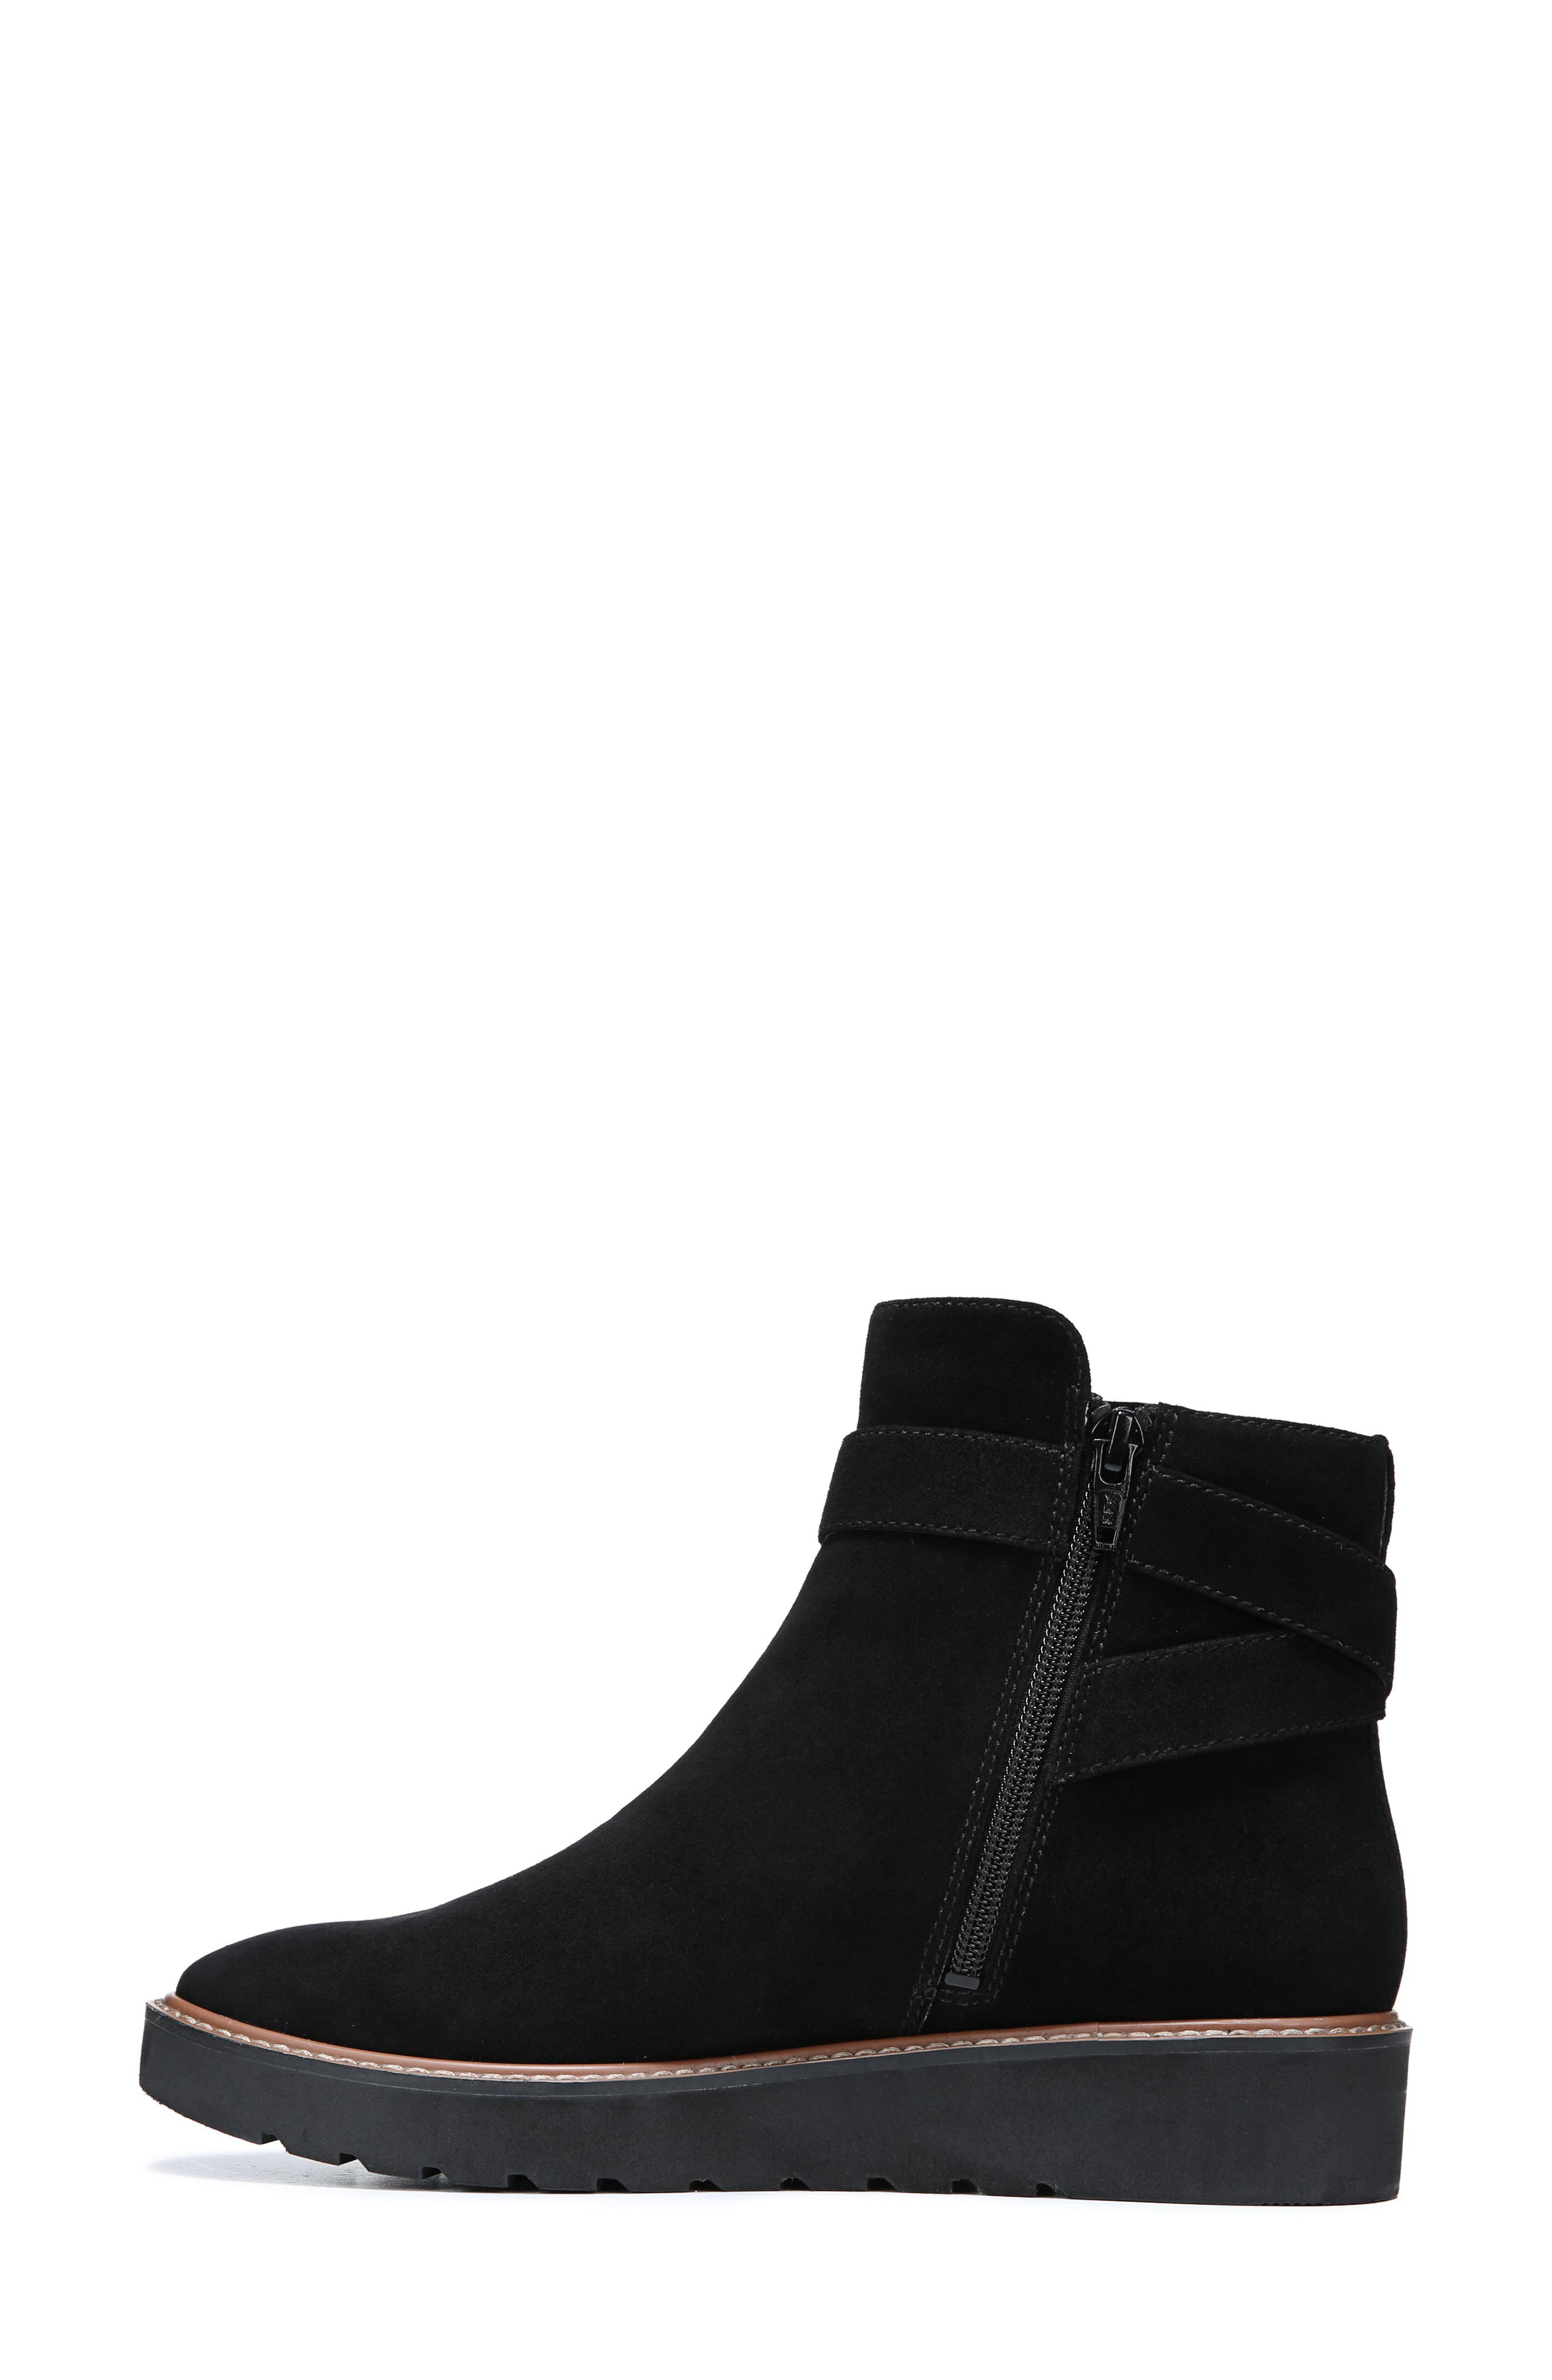 Aster Bootie,                             Alternate thumbnail 7, color,                             BLACK SUEDE